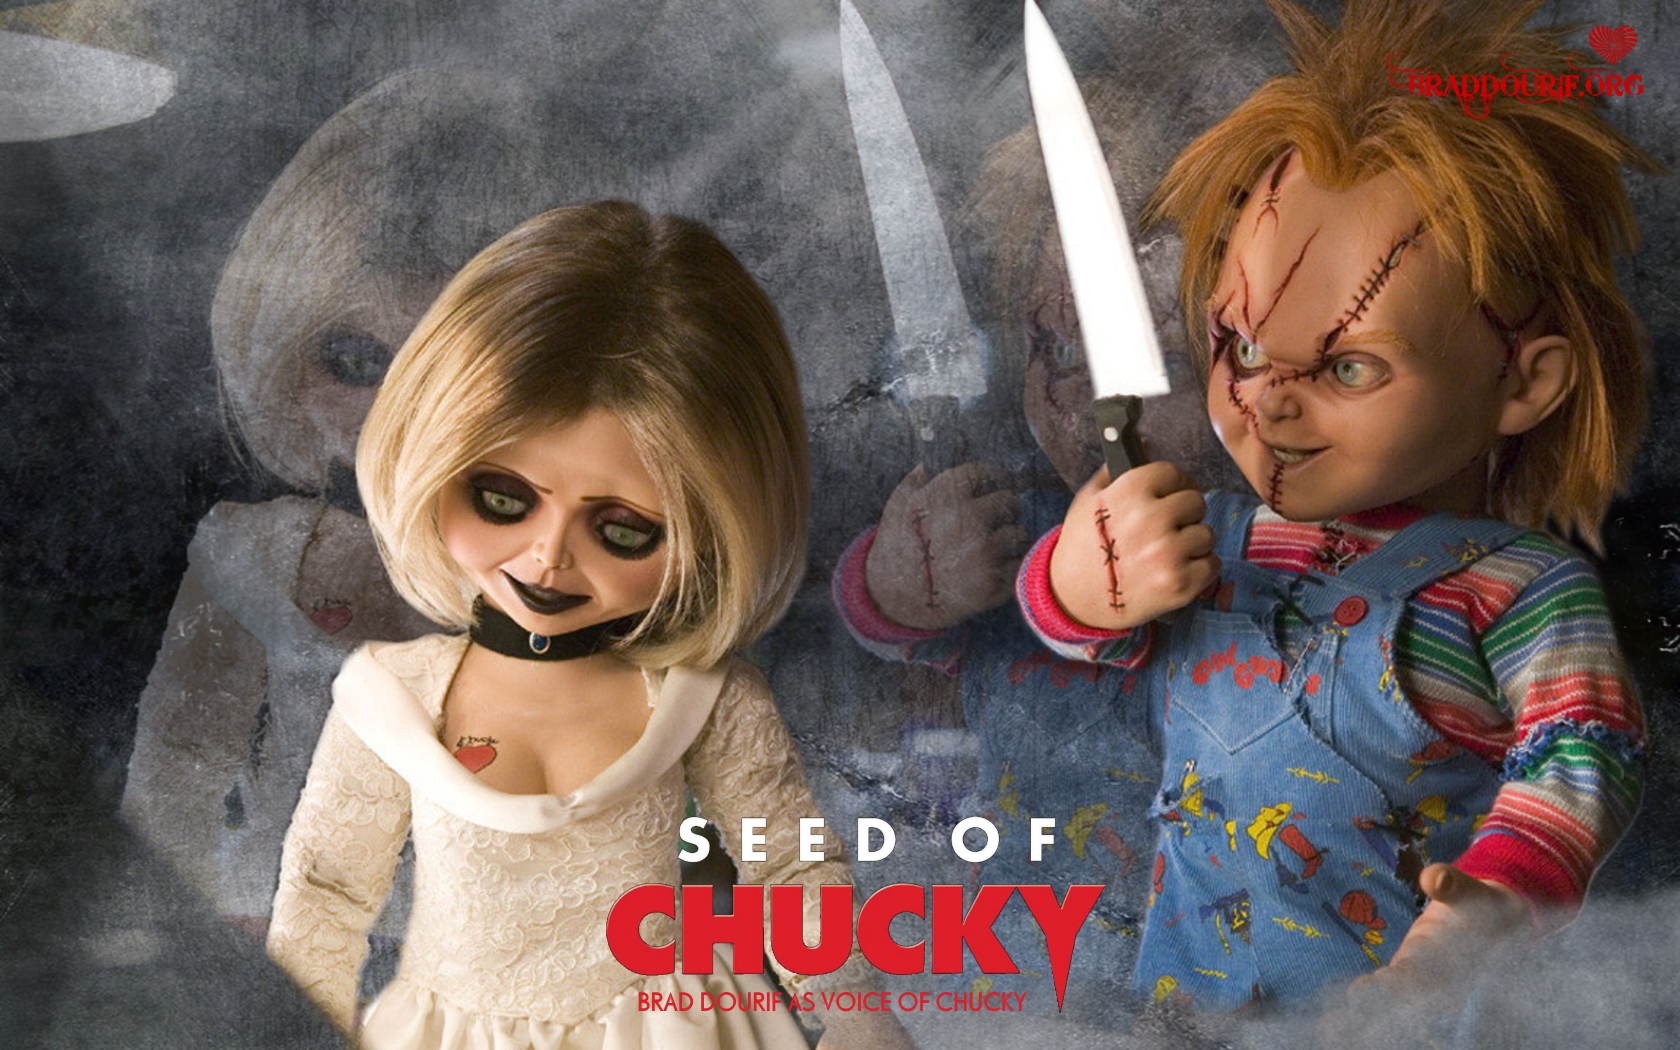 Seed of chucky 1st images chucky tiffany hd wallpaper - Seed of chucky wallpaper ...